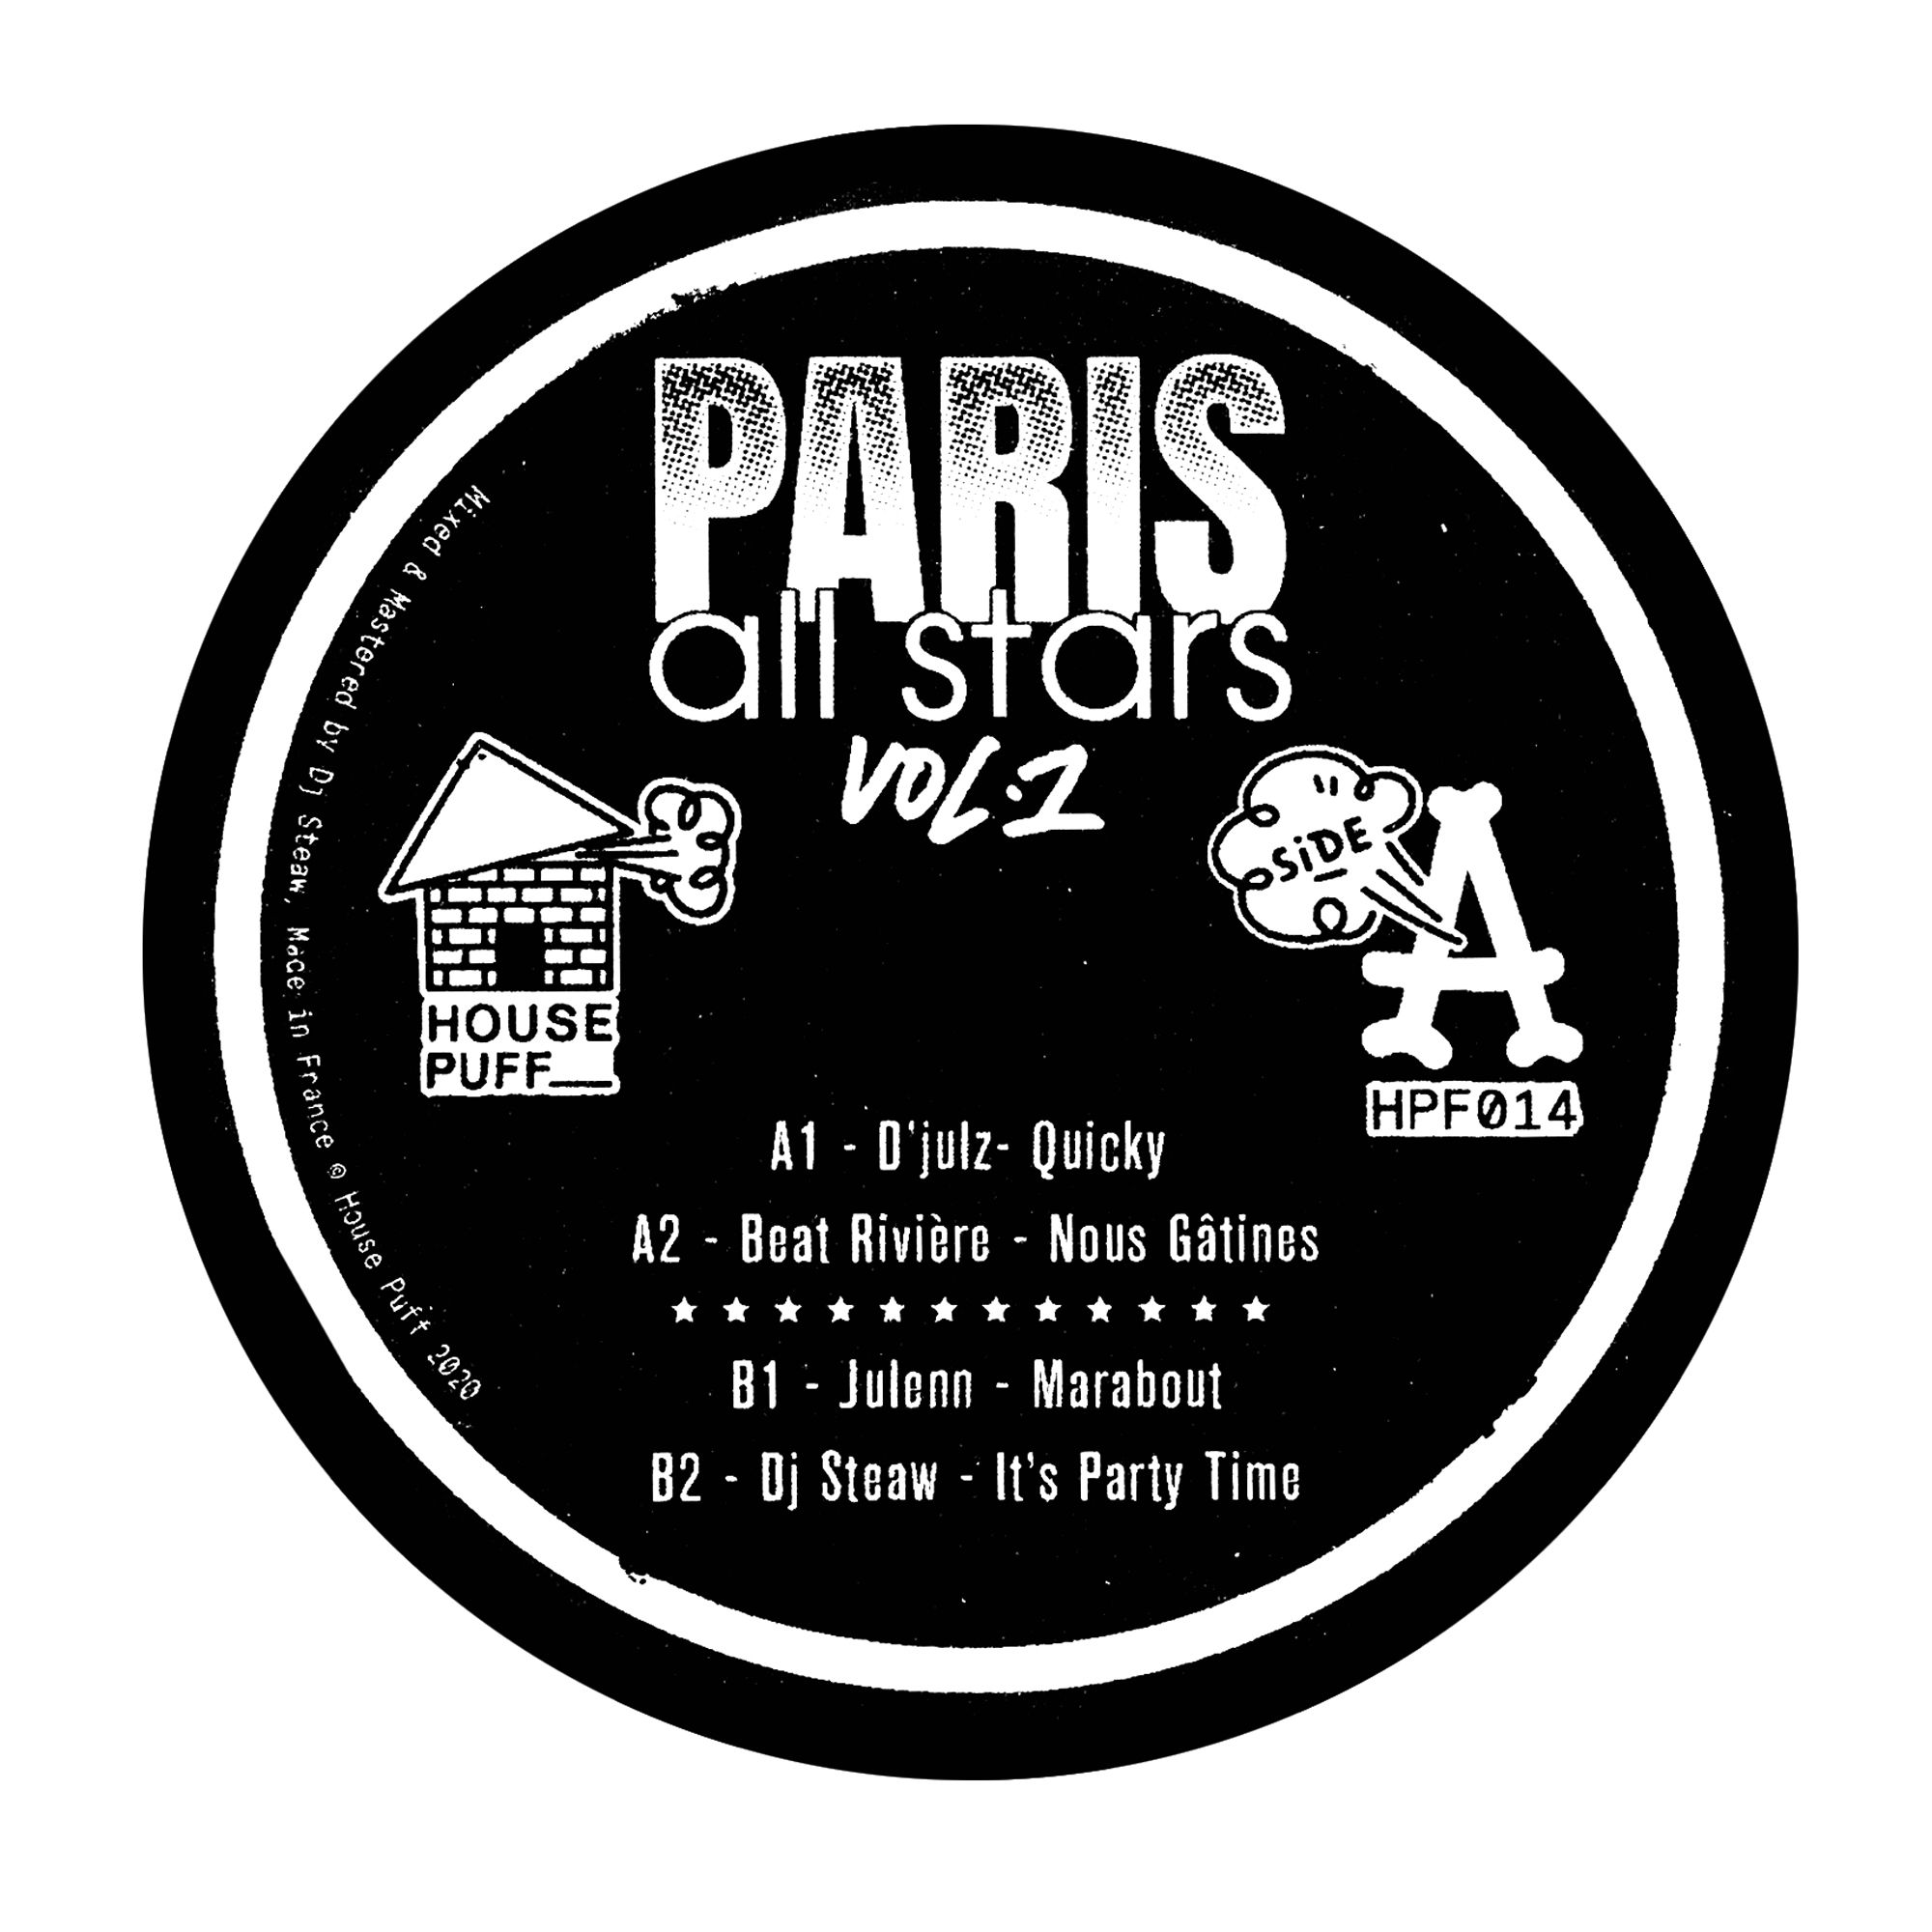 V/A {D'julz, Dj Steaw, Beat Rivière, Julenn] - Paris all stars vol.1 EP